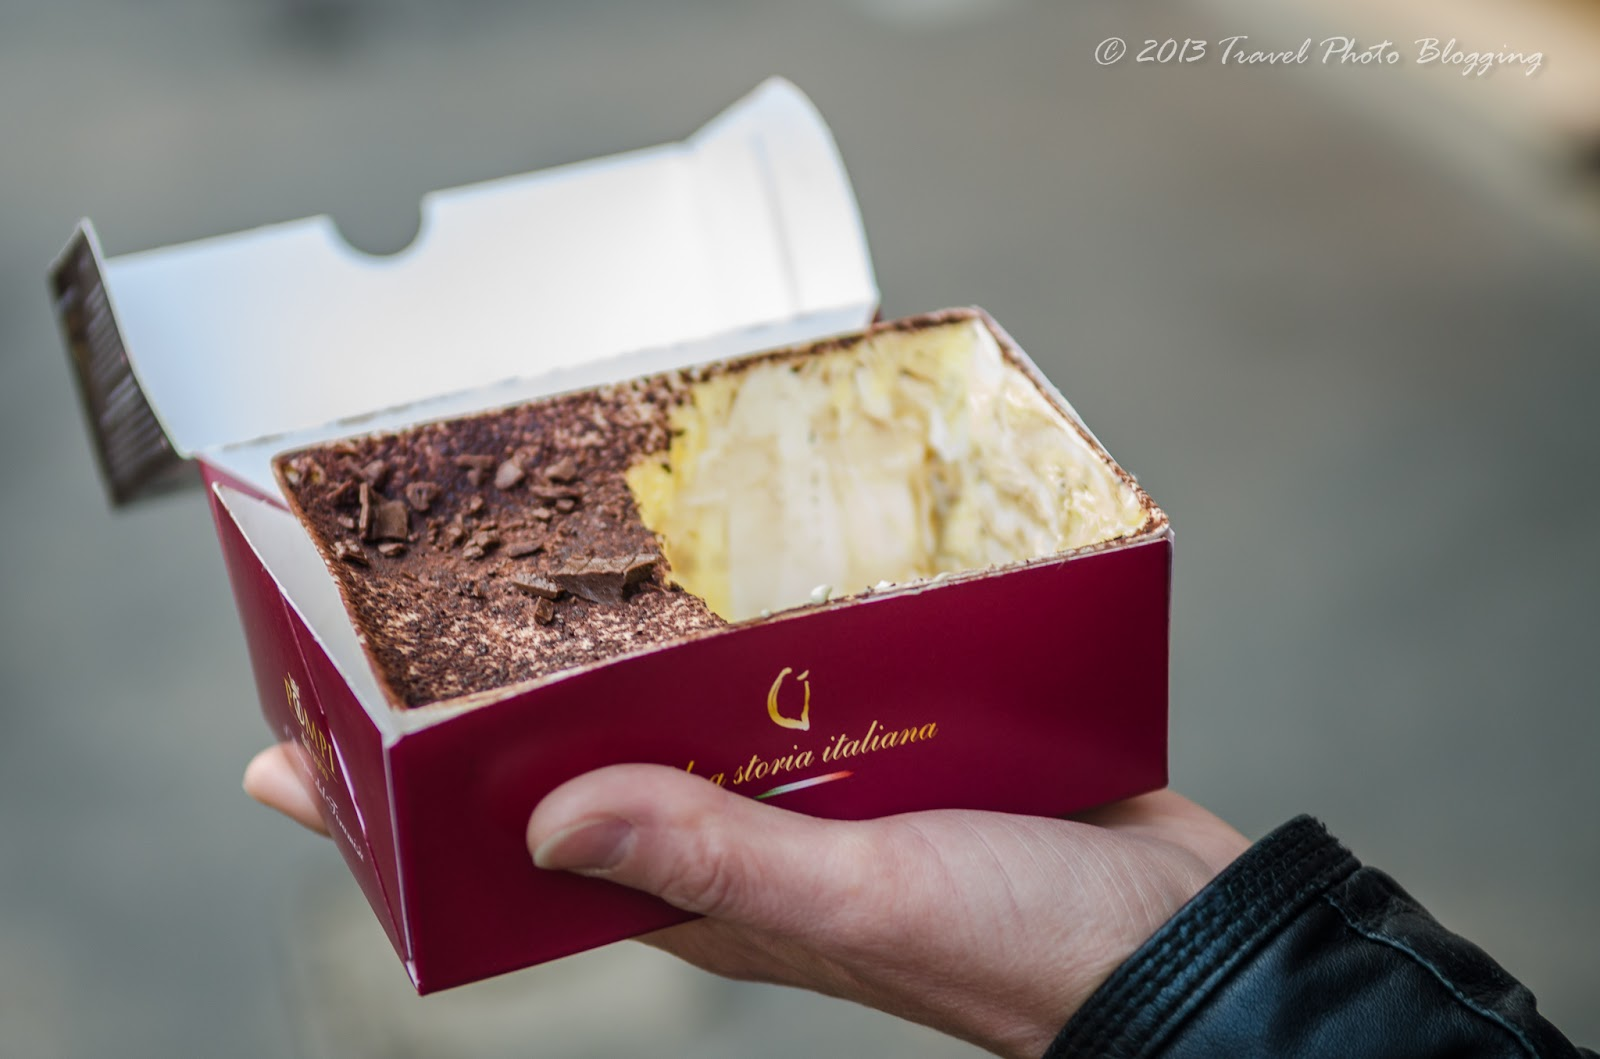 Travel Photo Blogging Best Desserts Rome Has To Offer